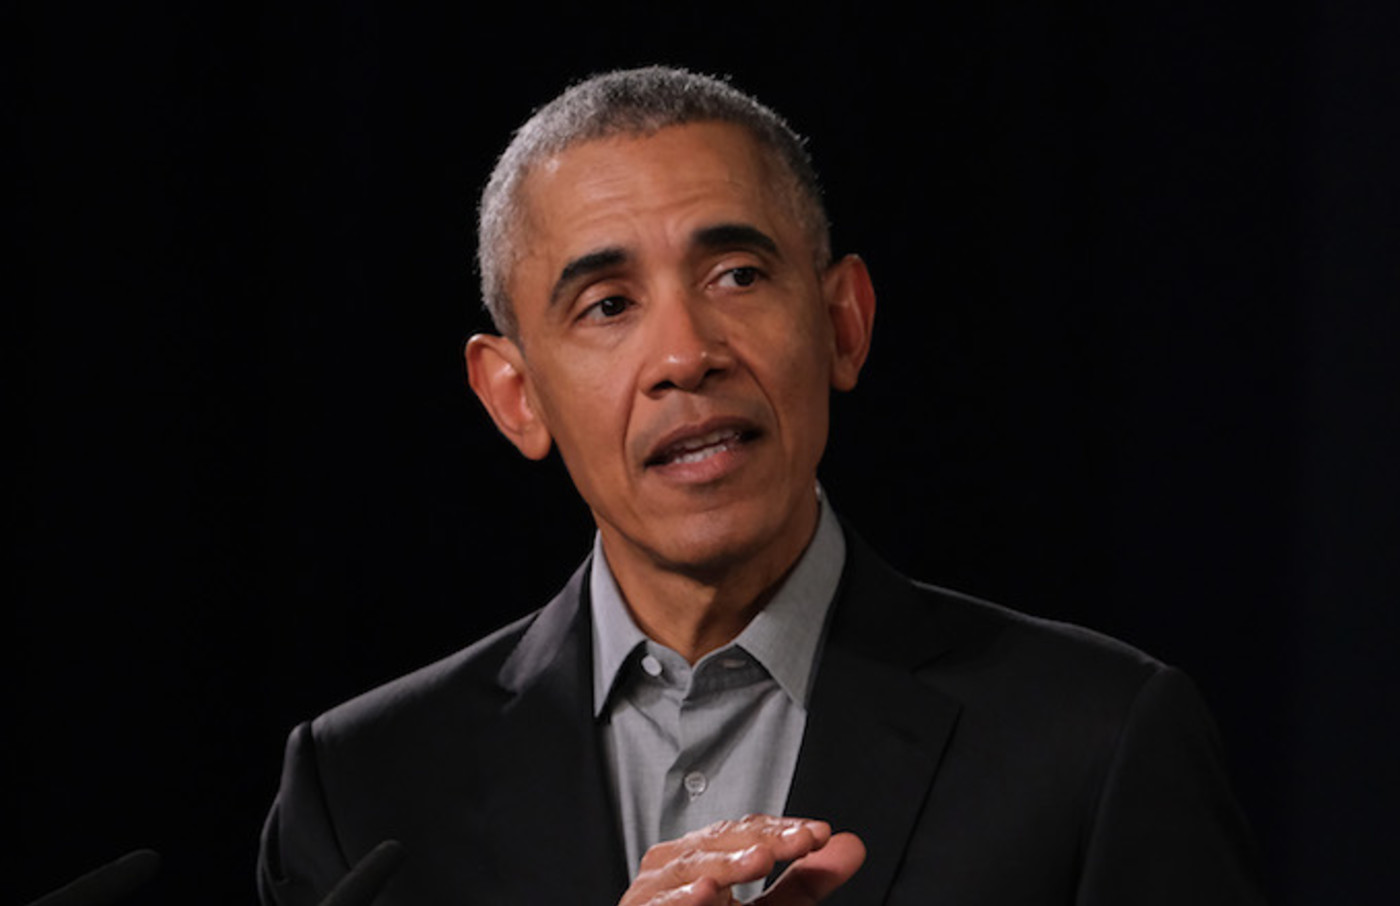 Barack Obama speaks to young leaders from across Europe in a Town Hall-styled session.